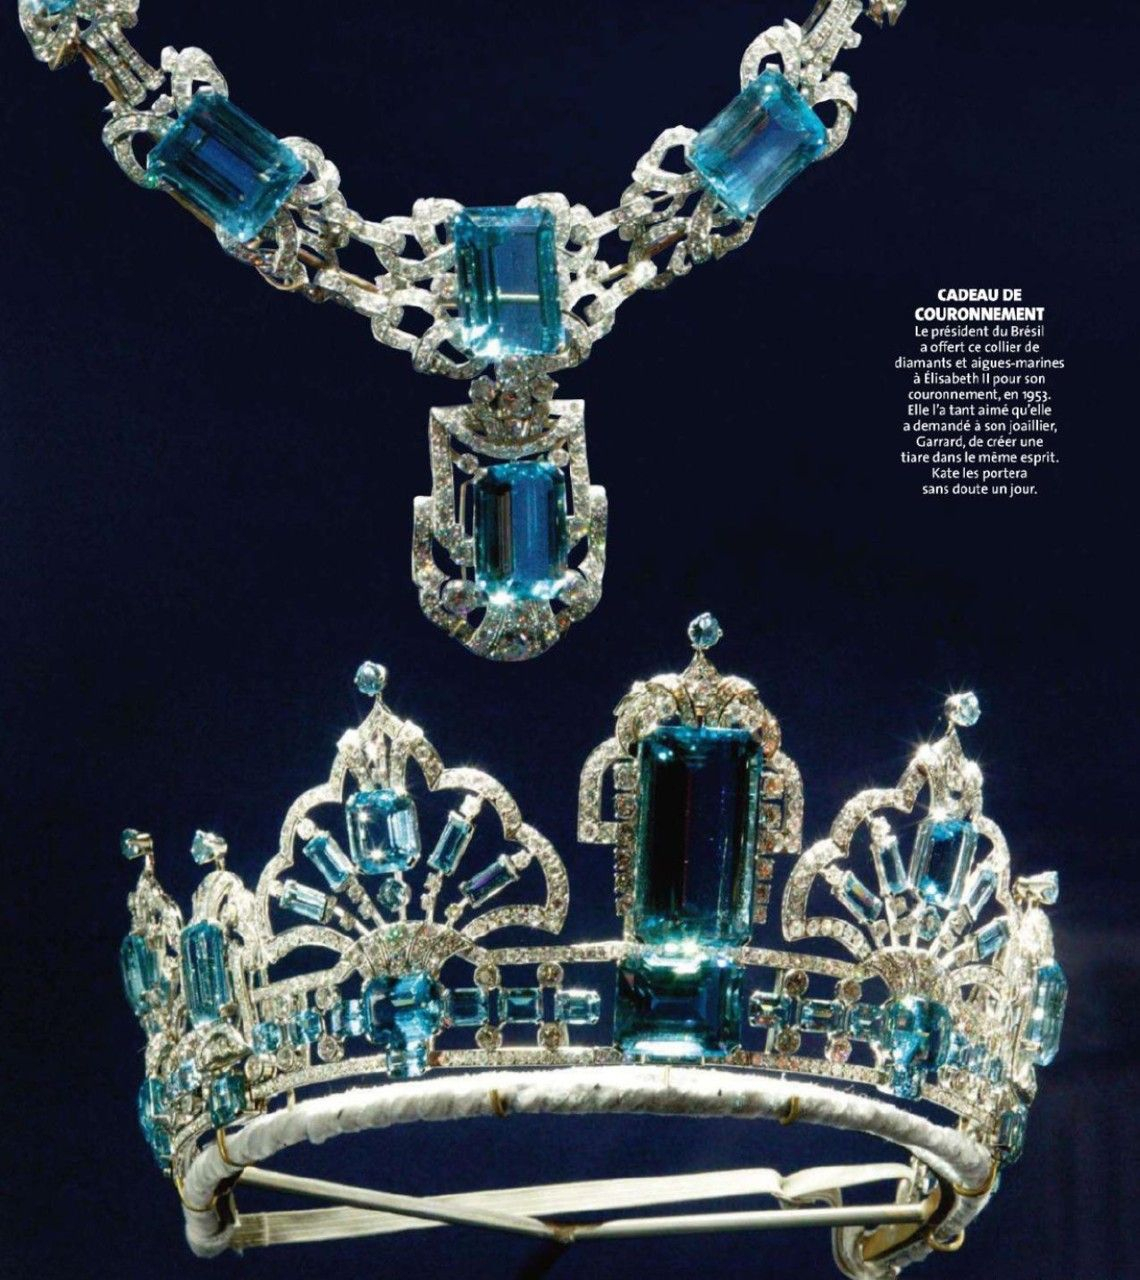 Brazilian Aquamarine Tiara And Necklace, One Of The Newest Set Of Pertaining To Most Recent Tiara Crown Collier Necklaces (View 5 of 25)